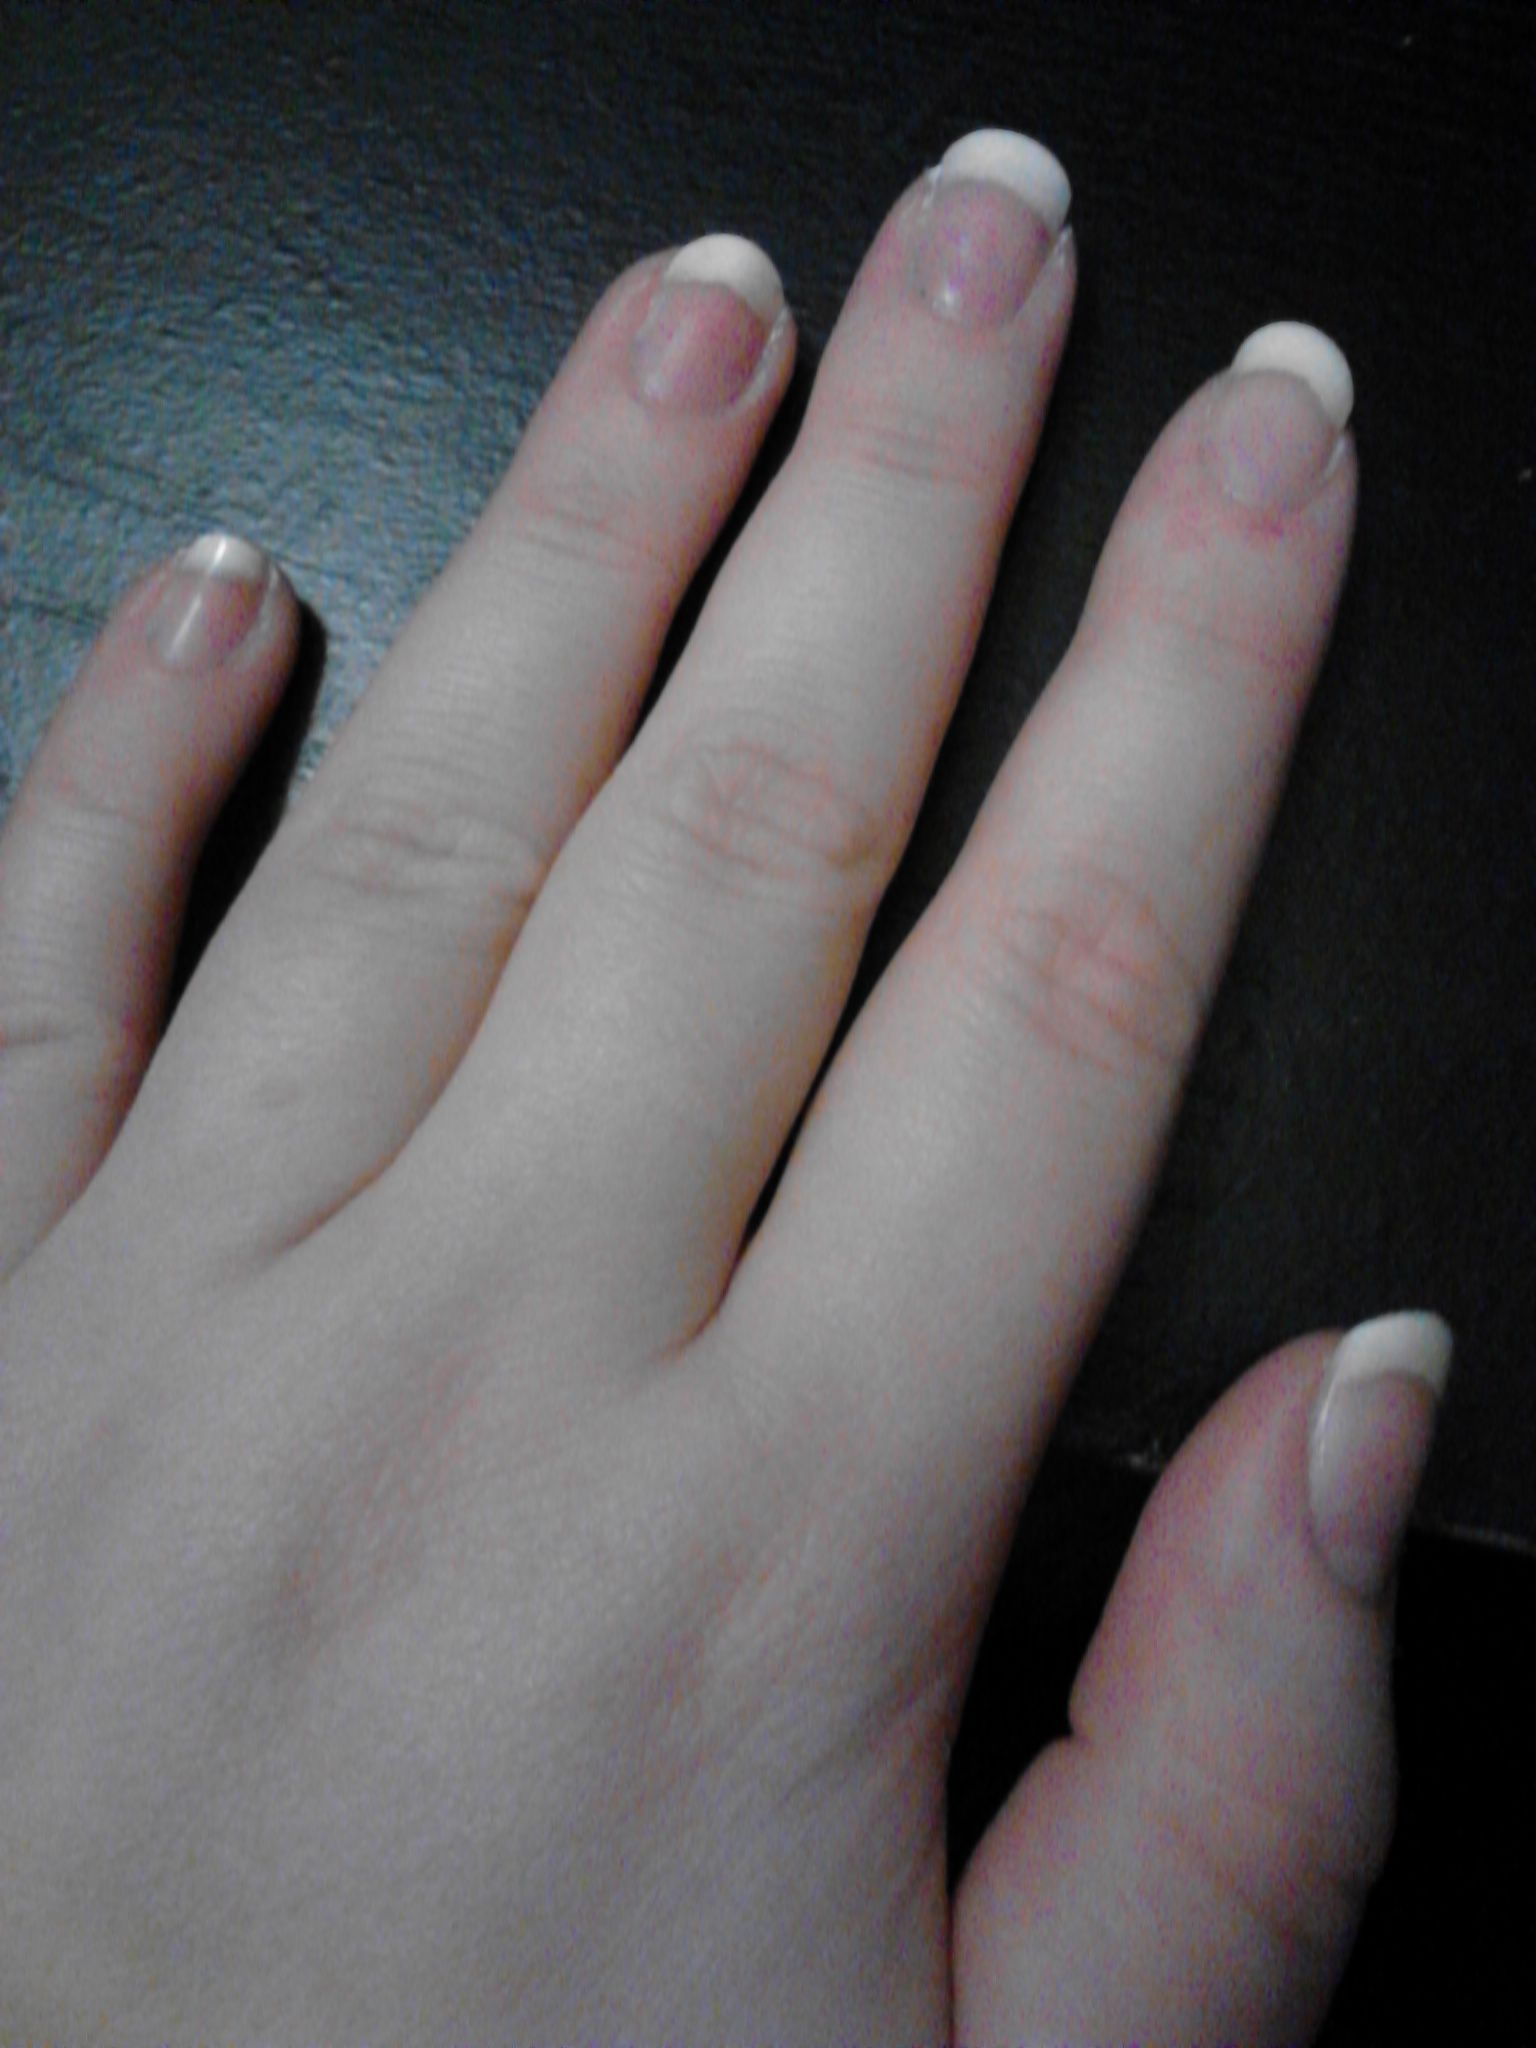 My nails were very brittle and transparent, so I found a way to make ...